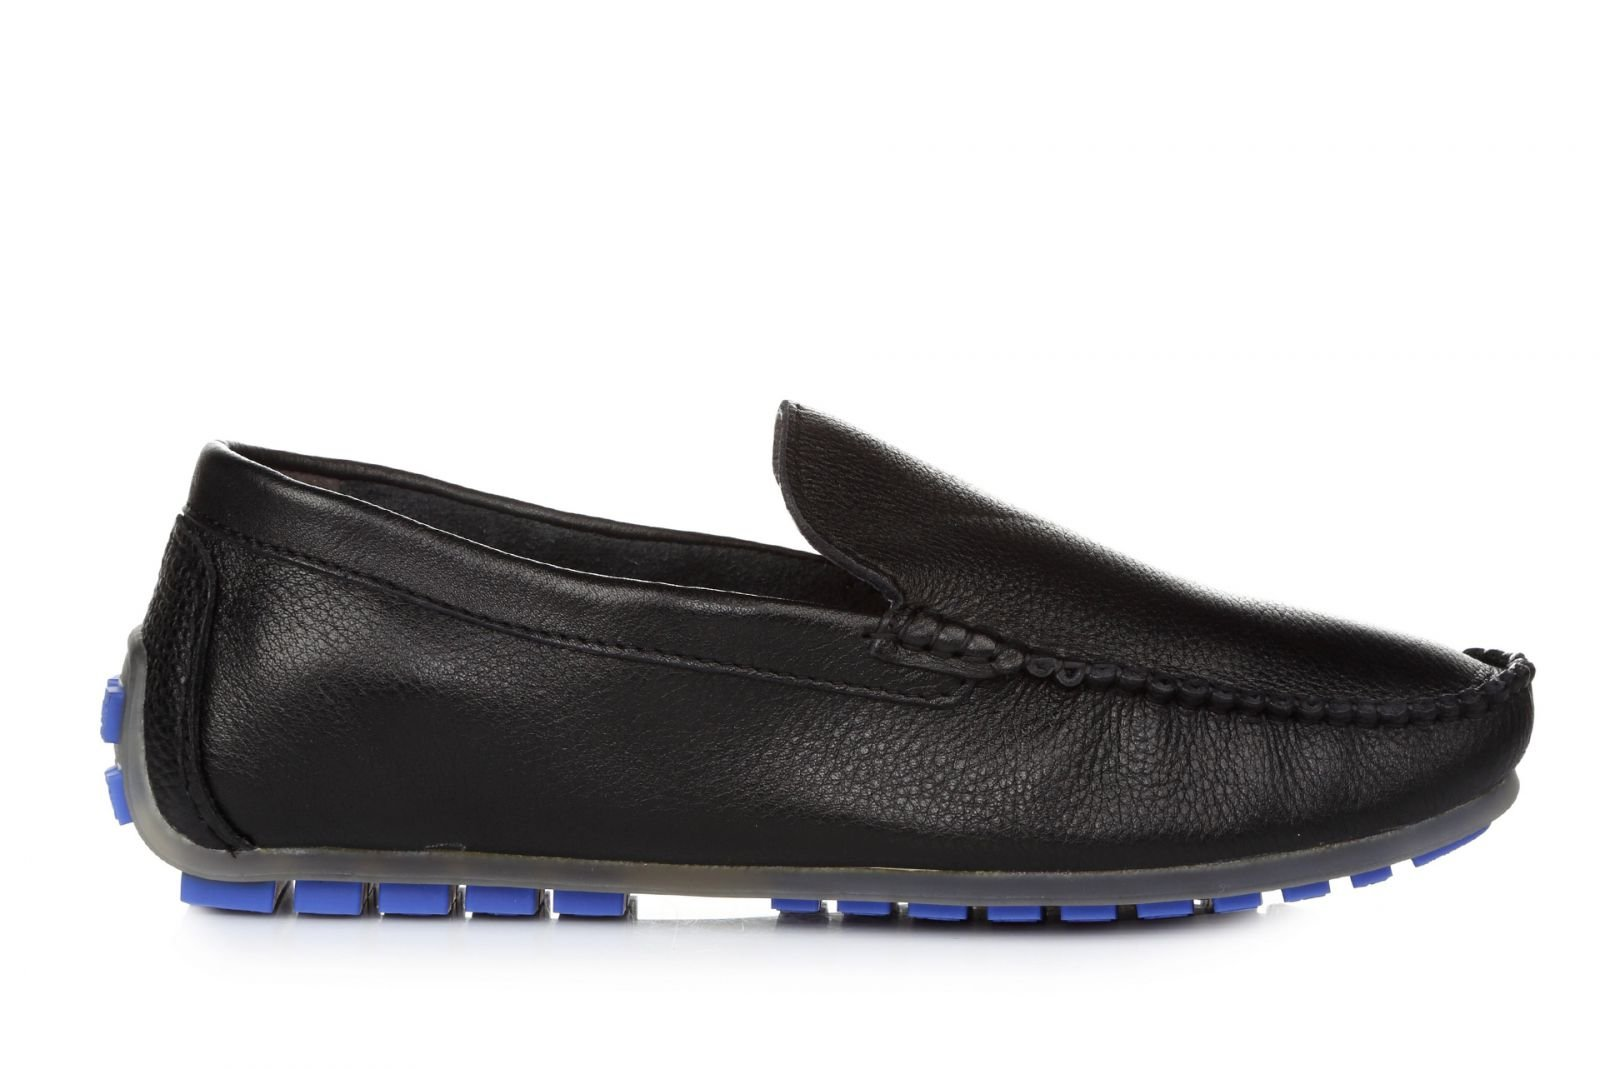 moccasin black single women Find great deals on ebay for leather moccasins womens shop with confidence skip to main content ebay:  coach women's shoes 7b leather black fredrica loafers moccasin slipons   women's casual loafers leather shoes lady flats slip on moccasin single shoes unbranded $1599 buy it now free shipping 212+ sold.